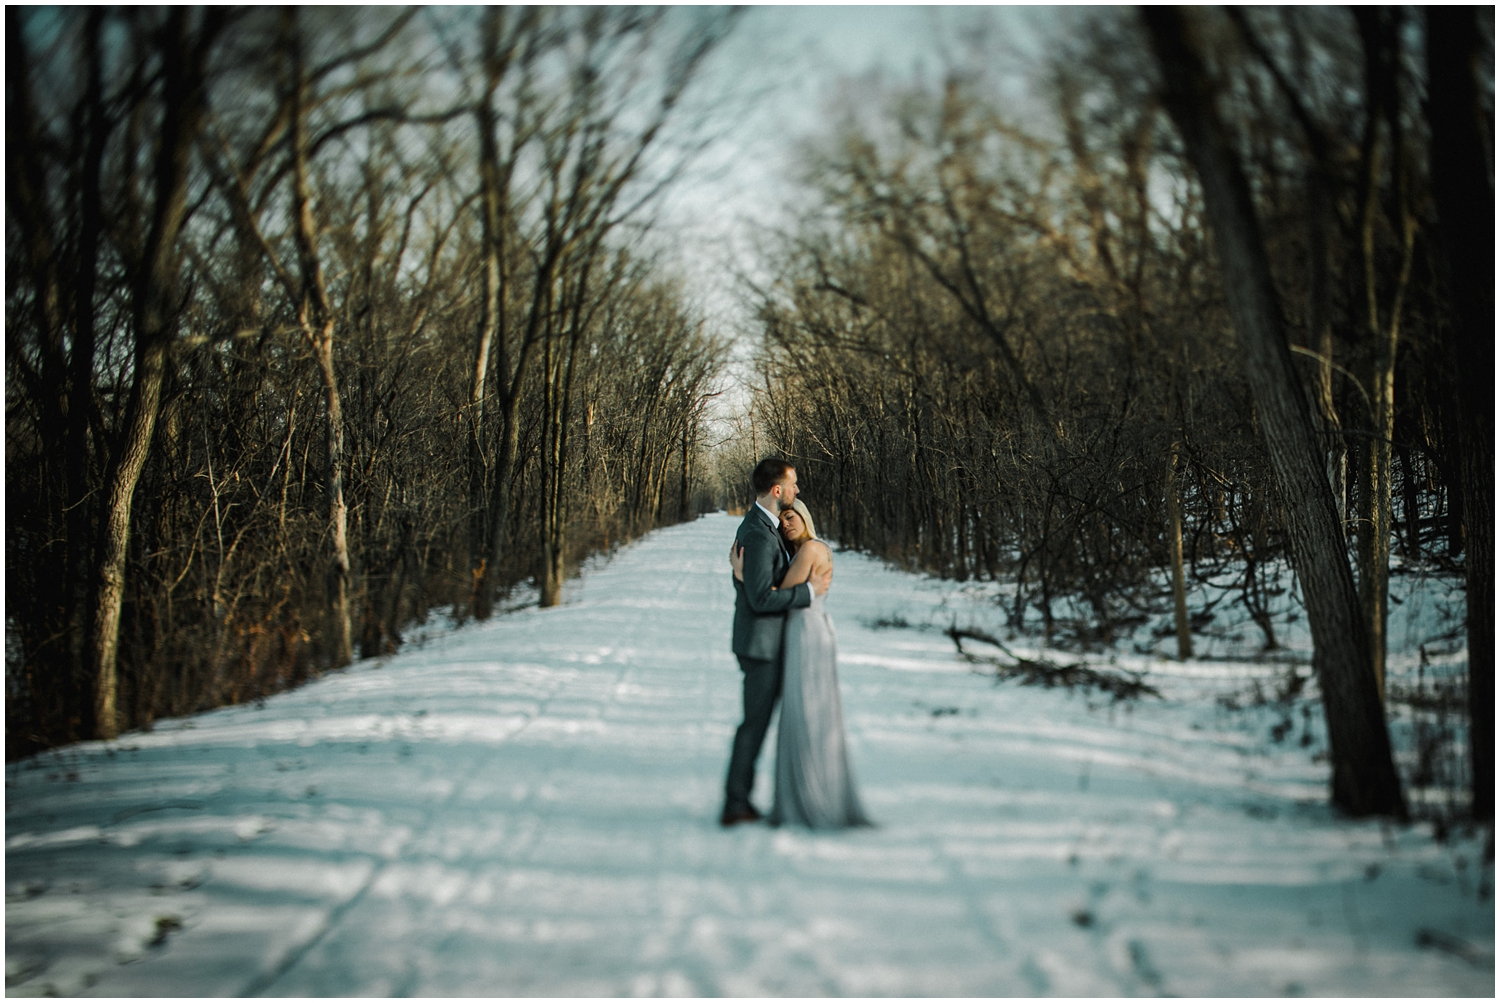 Laetitia Donaghy Photography - Chicago Engagement